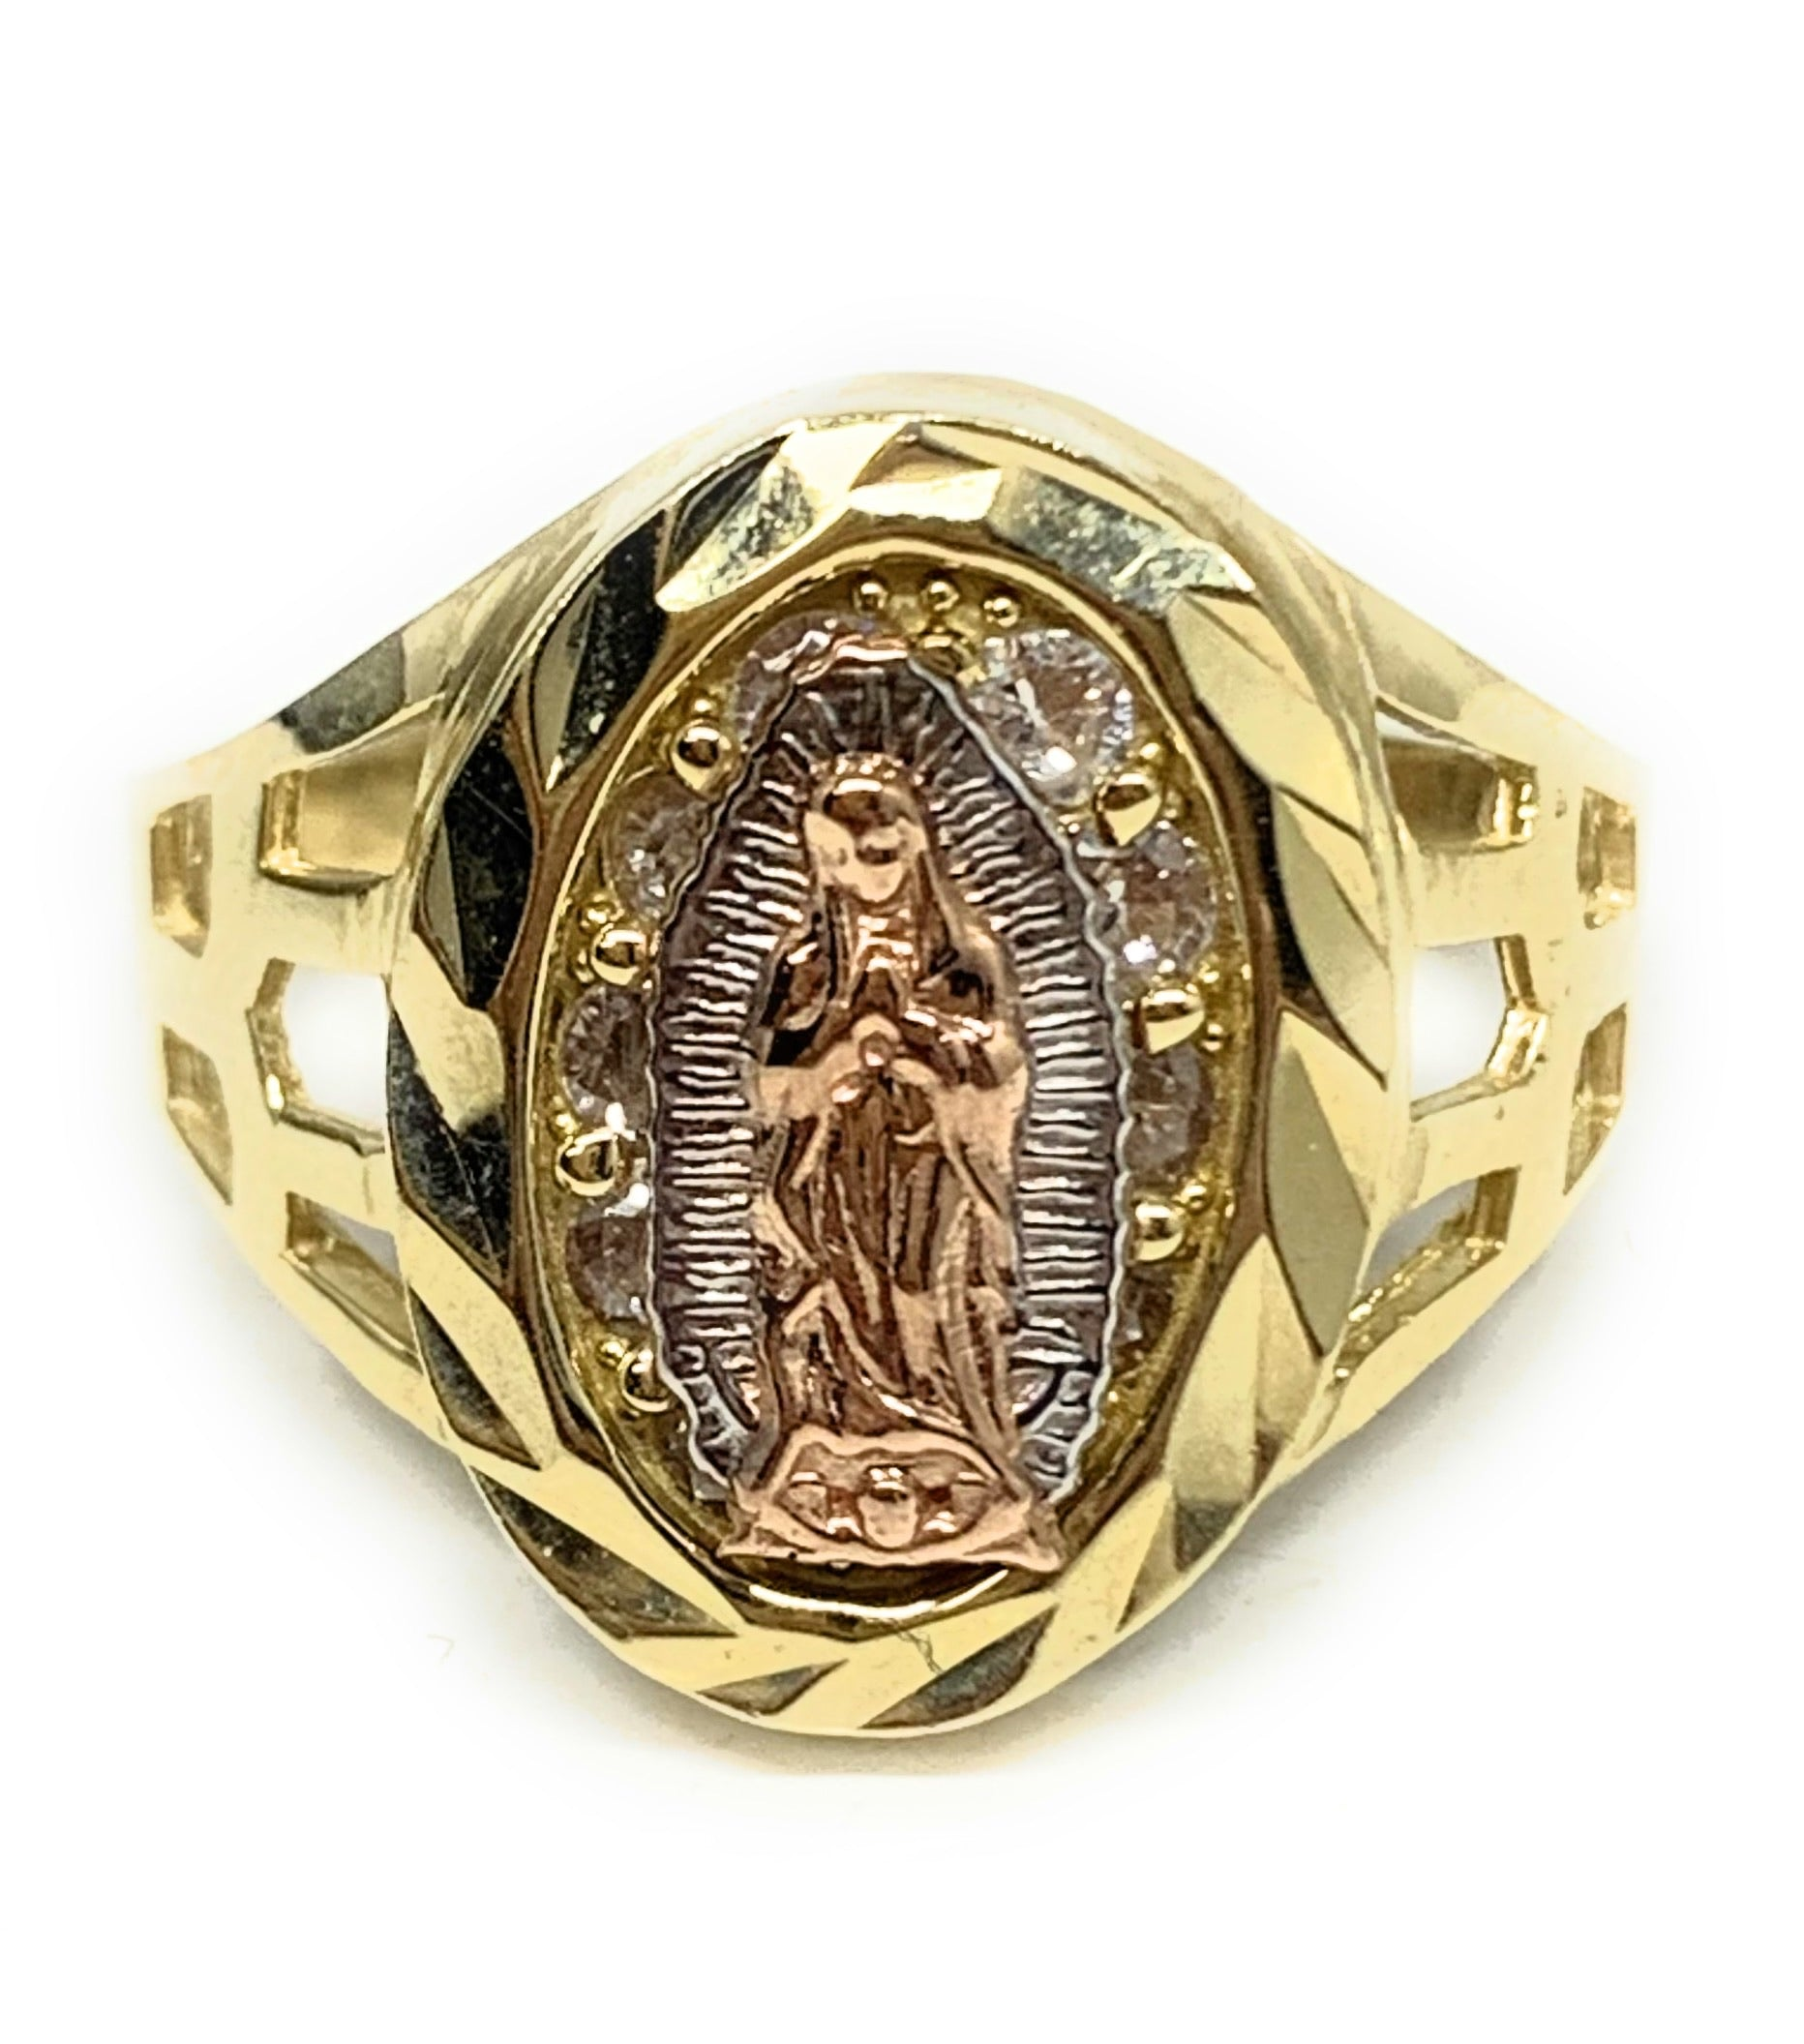 10k Solid Gold Tri-Color Virrgin Mary CZ Ring